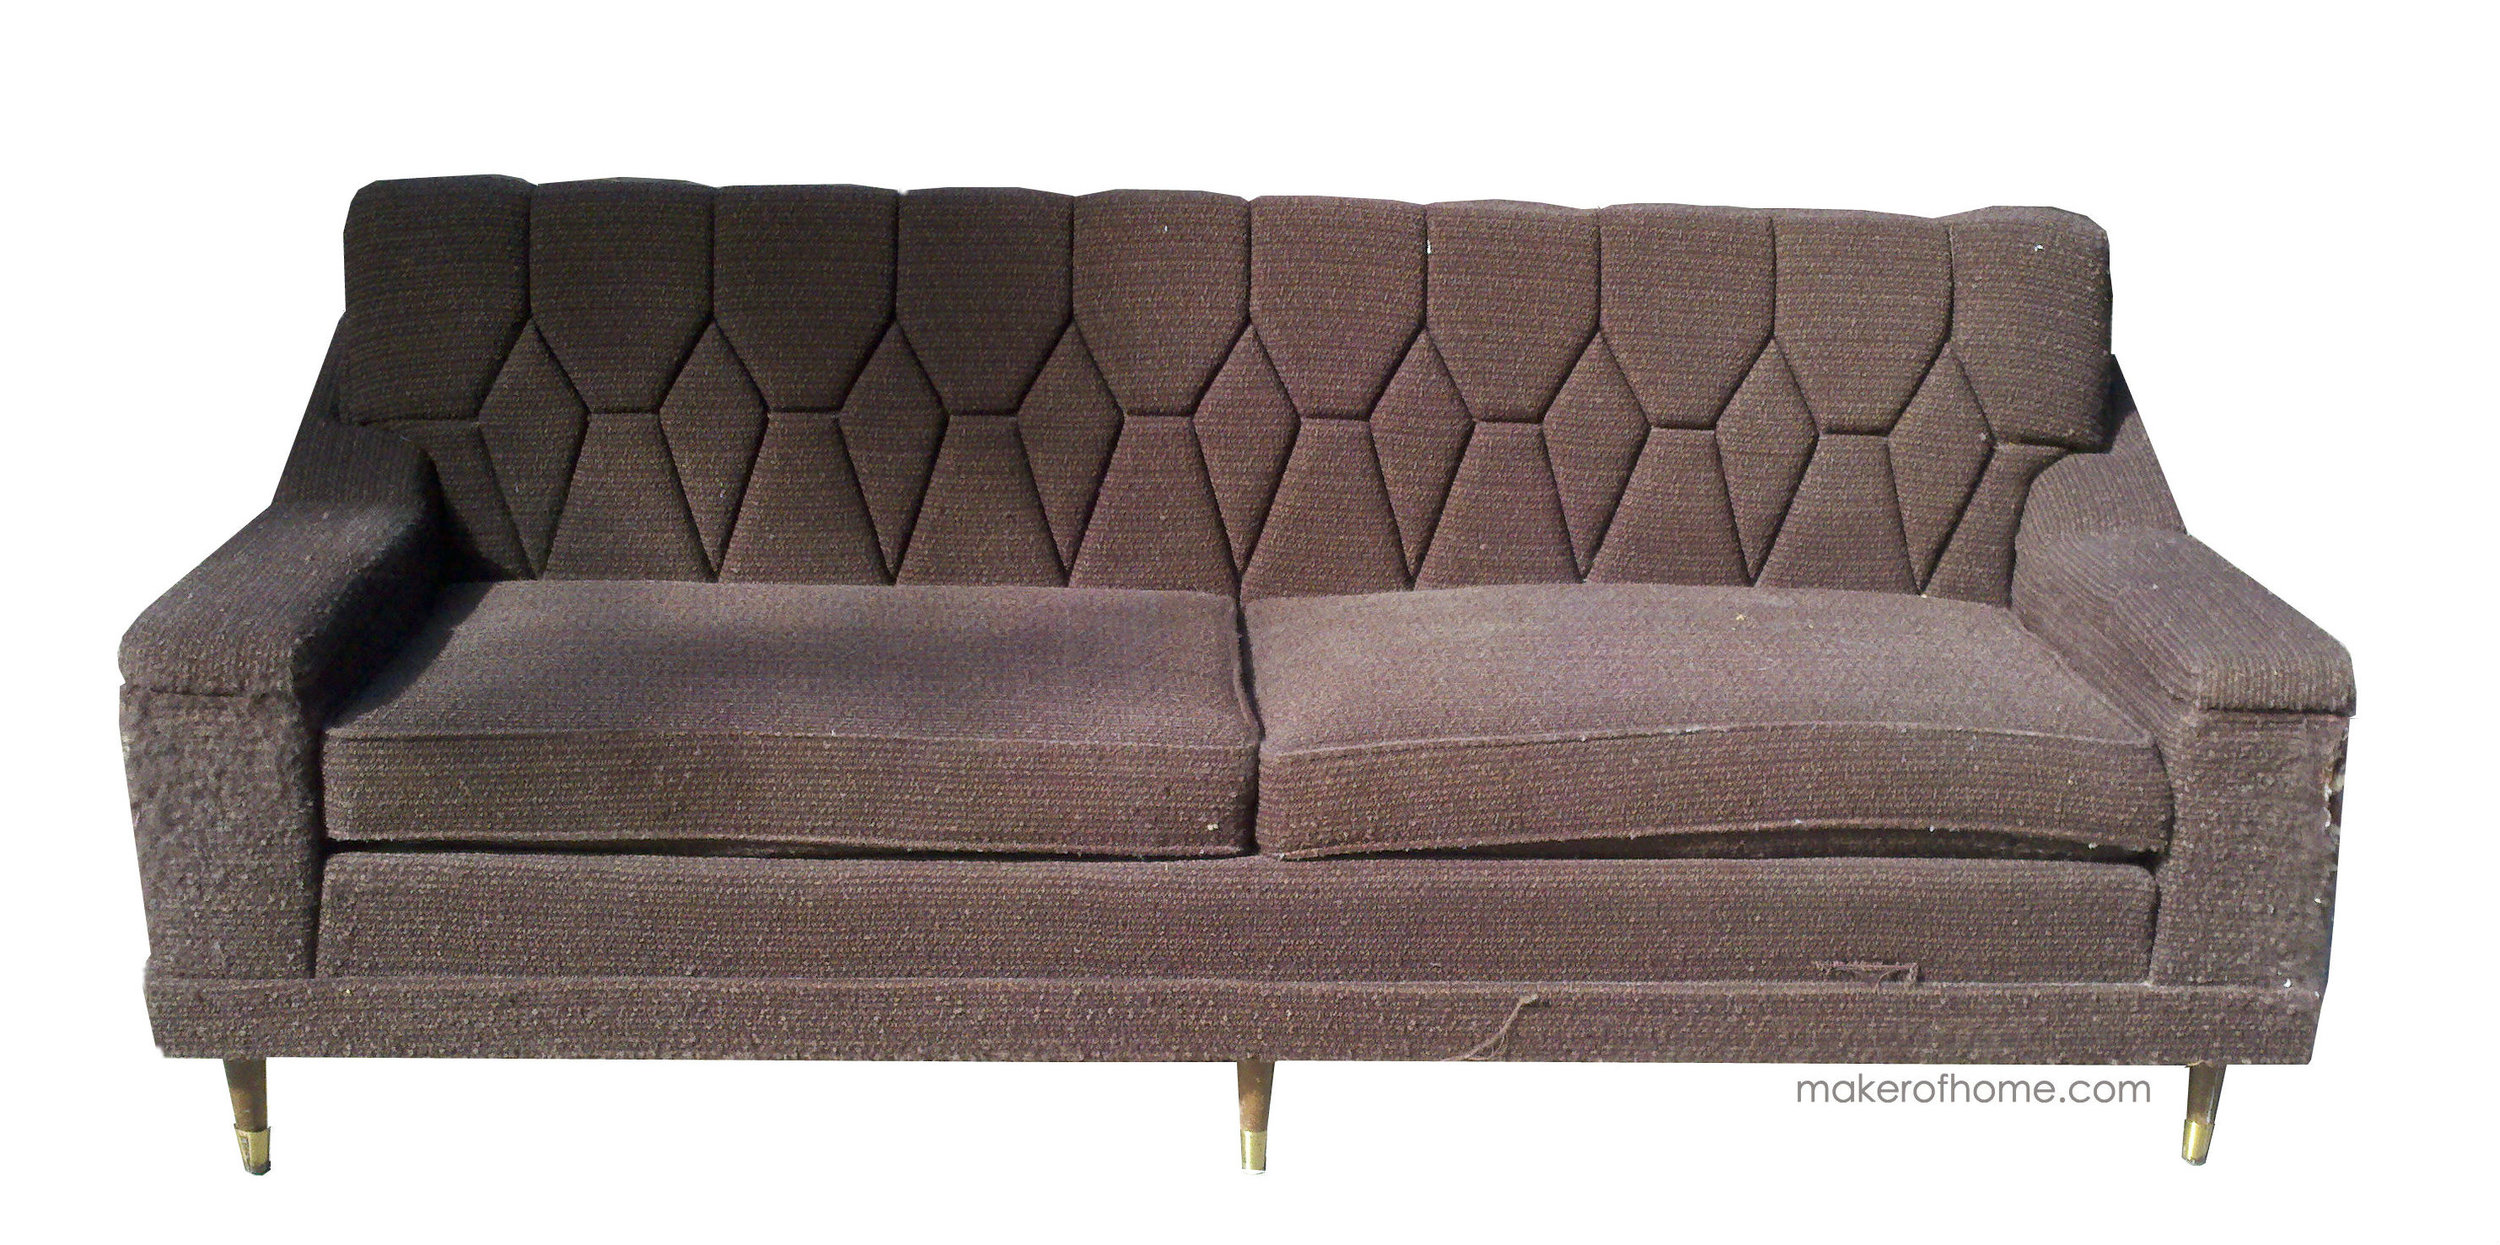 Couch Gross Ewwww Gross Yes I Ll Take It 1965 Couch Maker Of Home